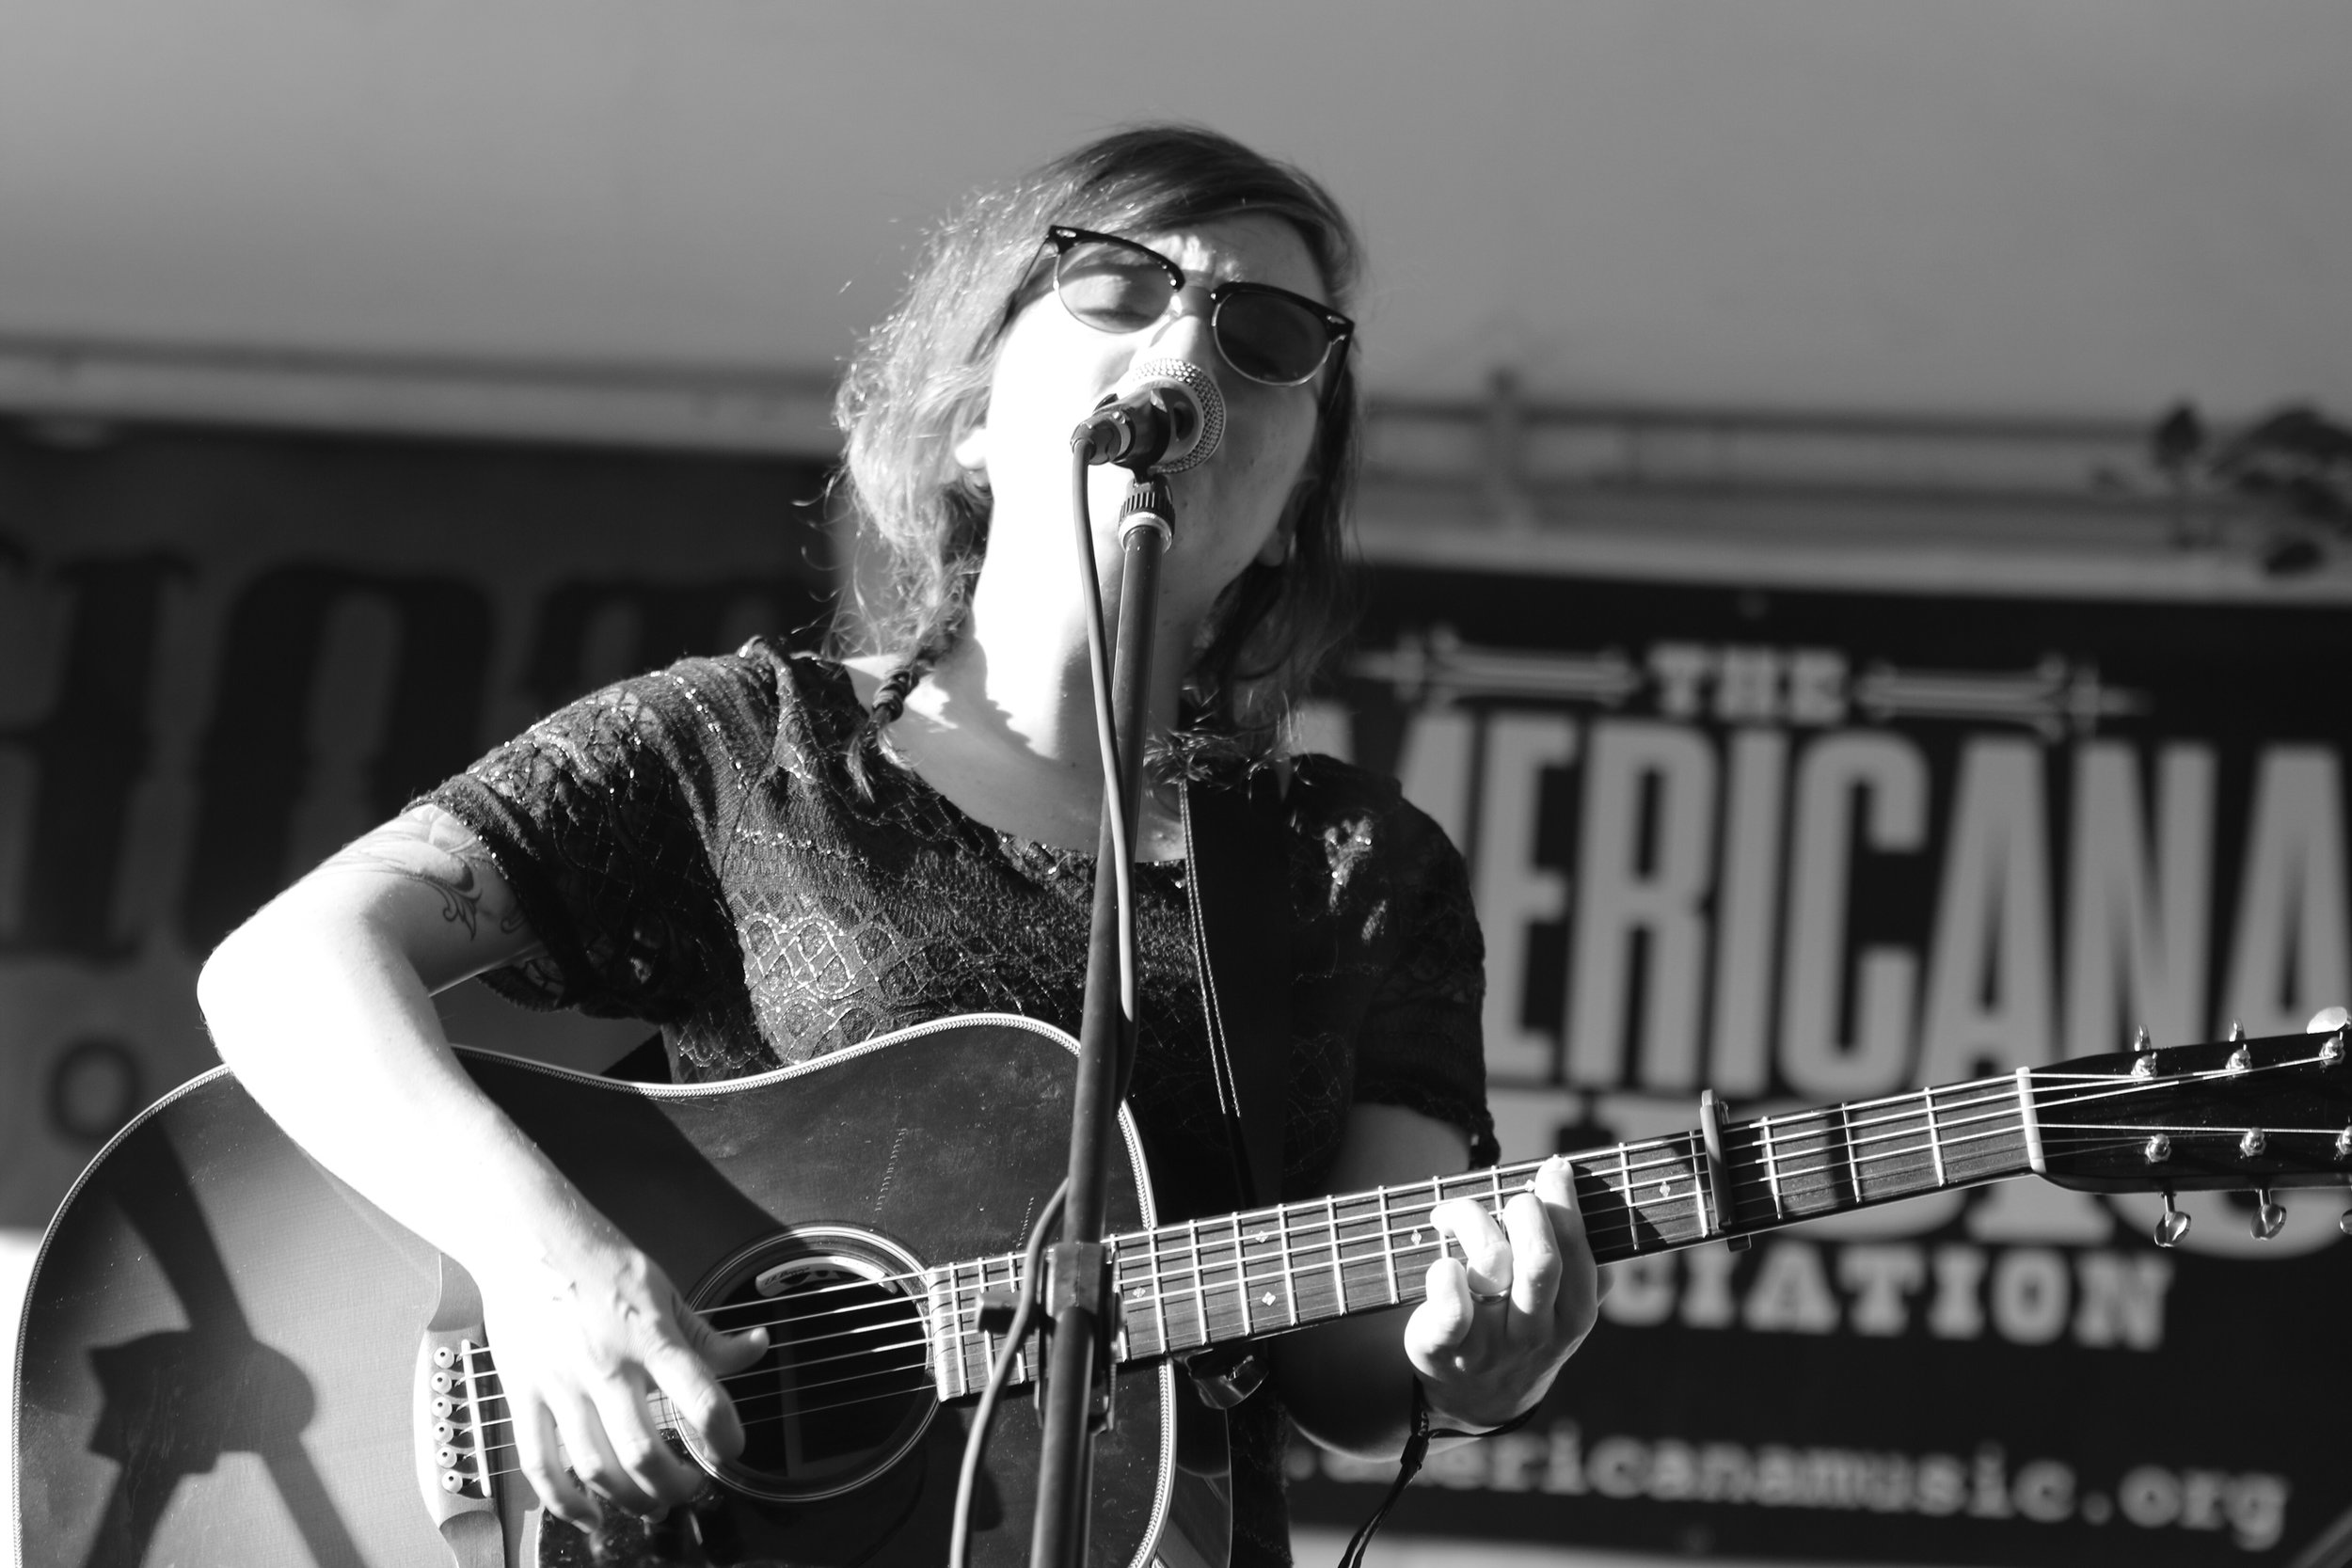 Ohio musician Lydia Loveless, performing at Americana Fest, by Chad Cochran